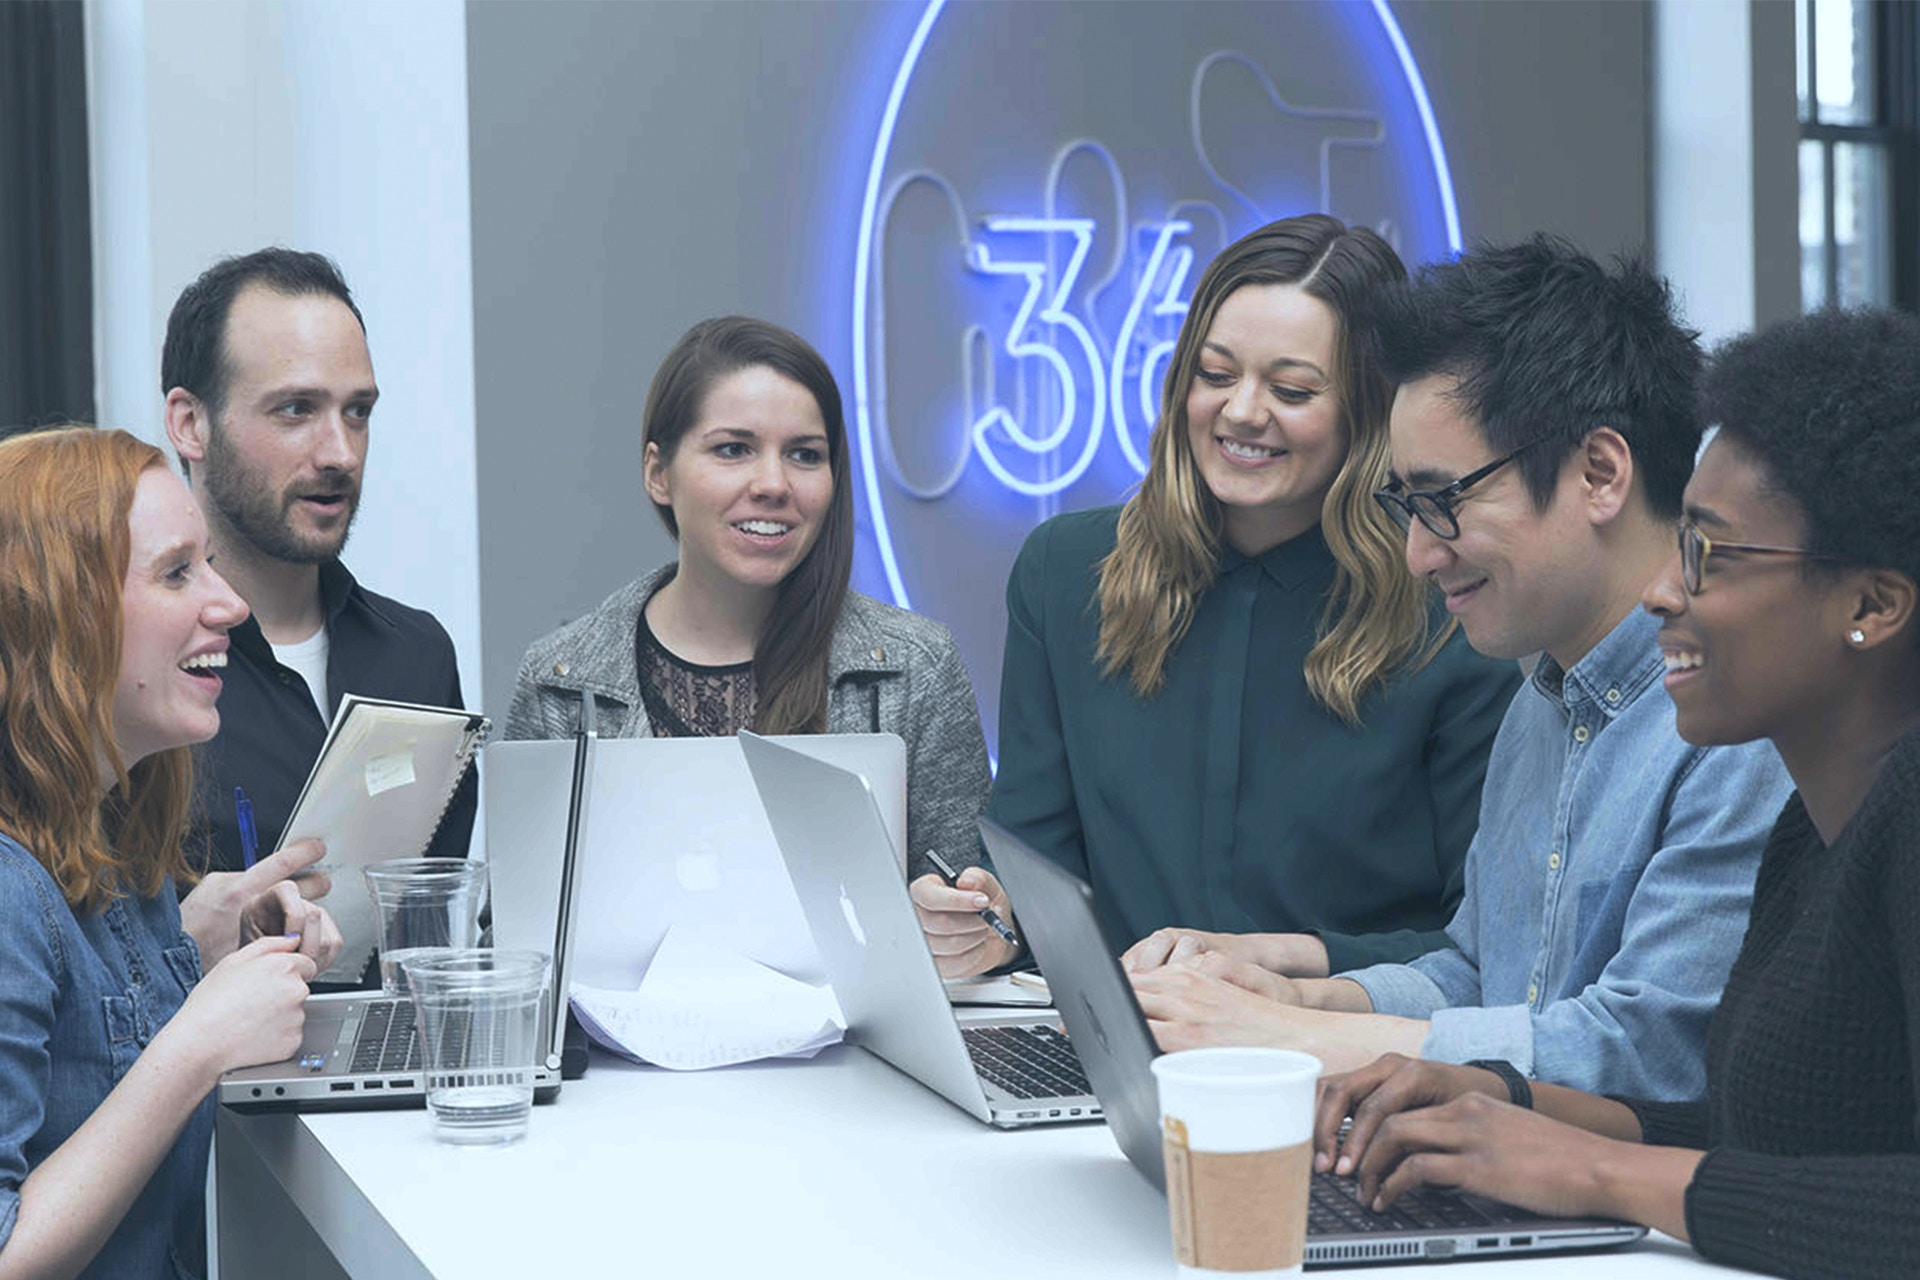 Group of people having a team meeting against the 360i logo